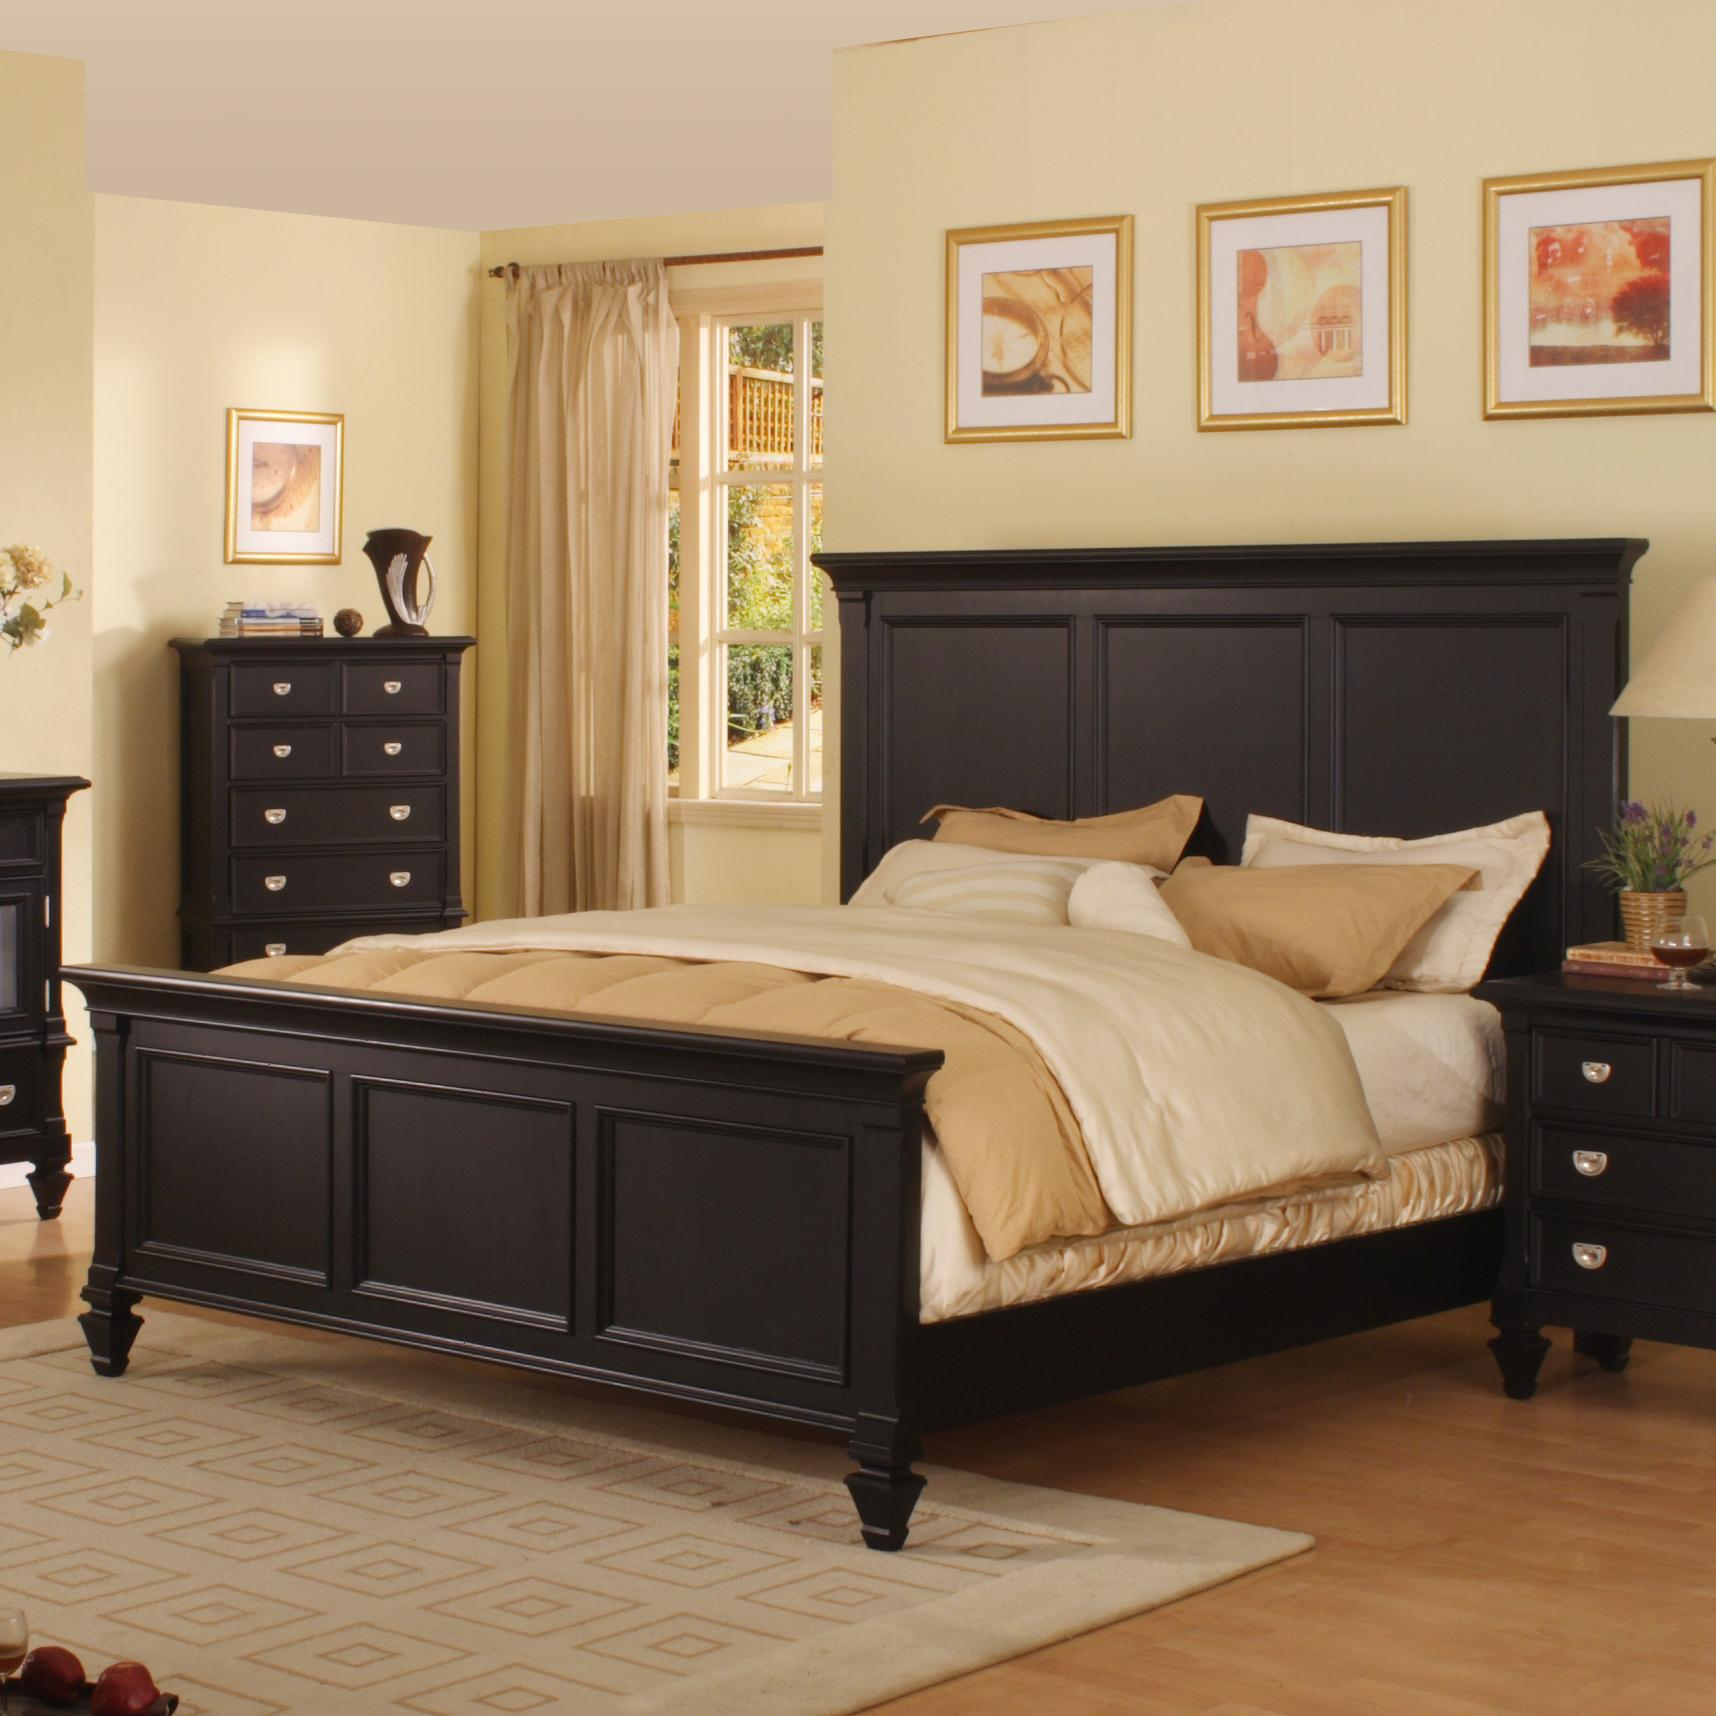 Morris Home Furnishings Surrey Surrey King Panel Bed  - Item Number: 494-22H+22F+22R